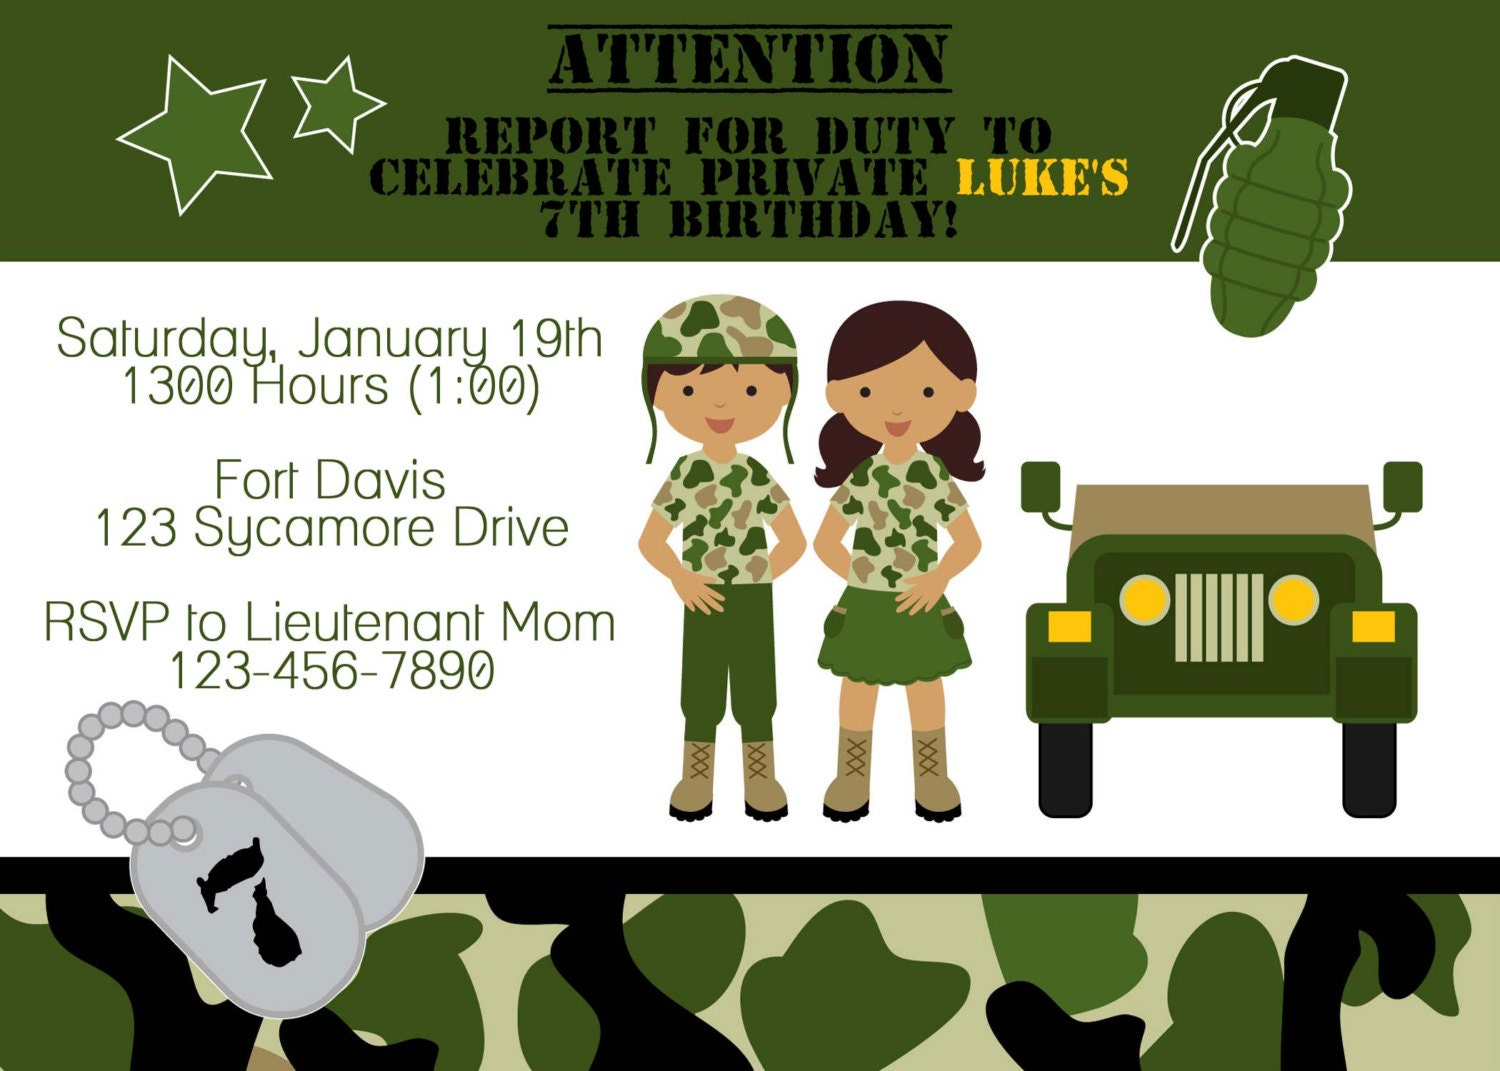 Army Birthday Invitations is one of our best ideas you might choose for invitation design